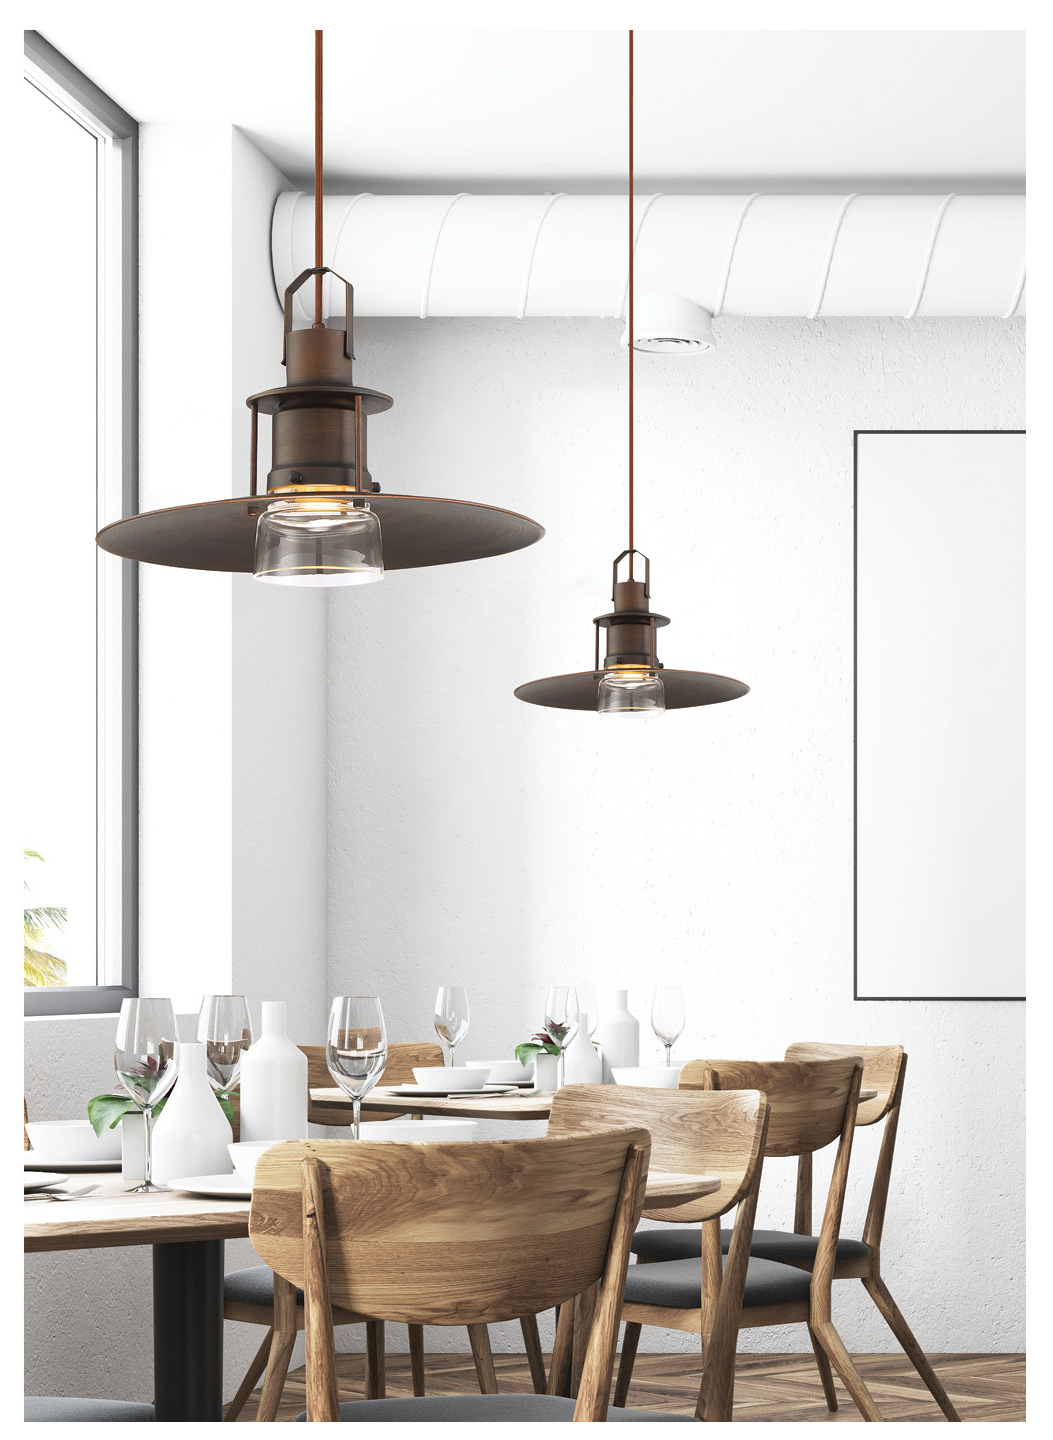 0f9cede6e122 ... lighting plays a bigger role than you might expect. Restaurant lighting  can greatly affect a customers dining experience. Using pendant lighting is  an ...